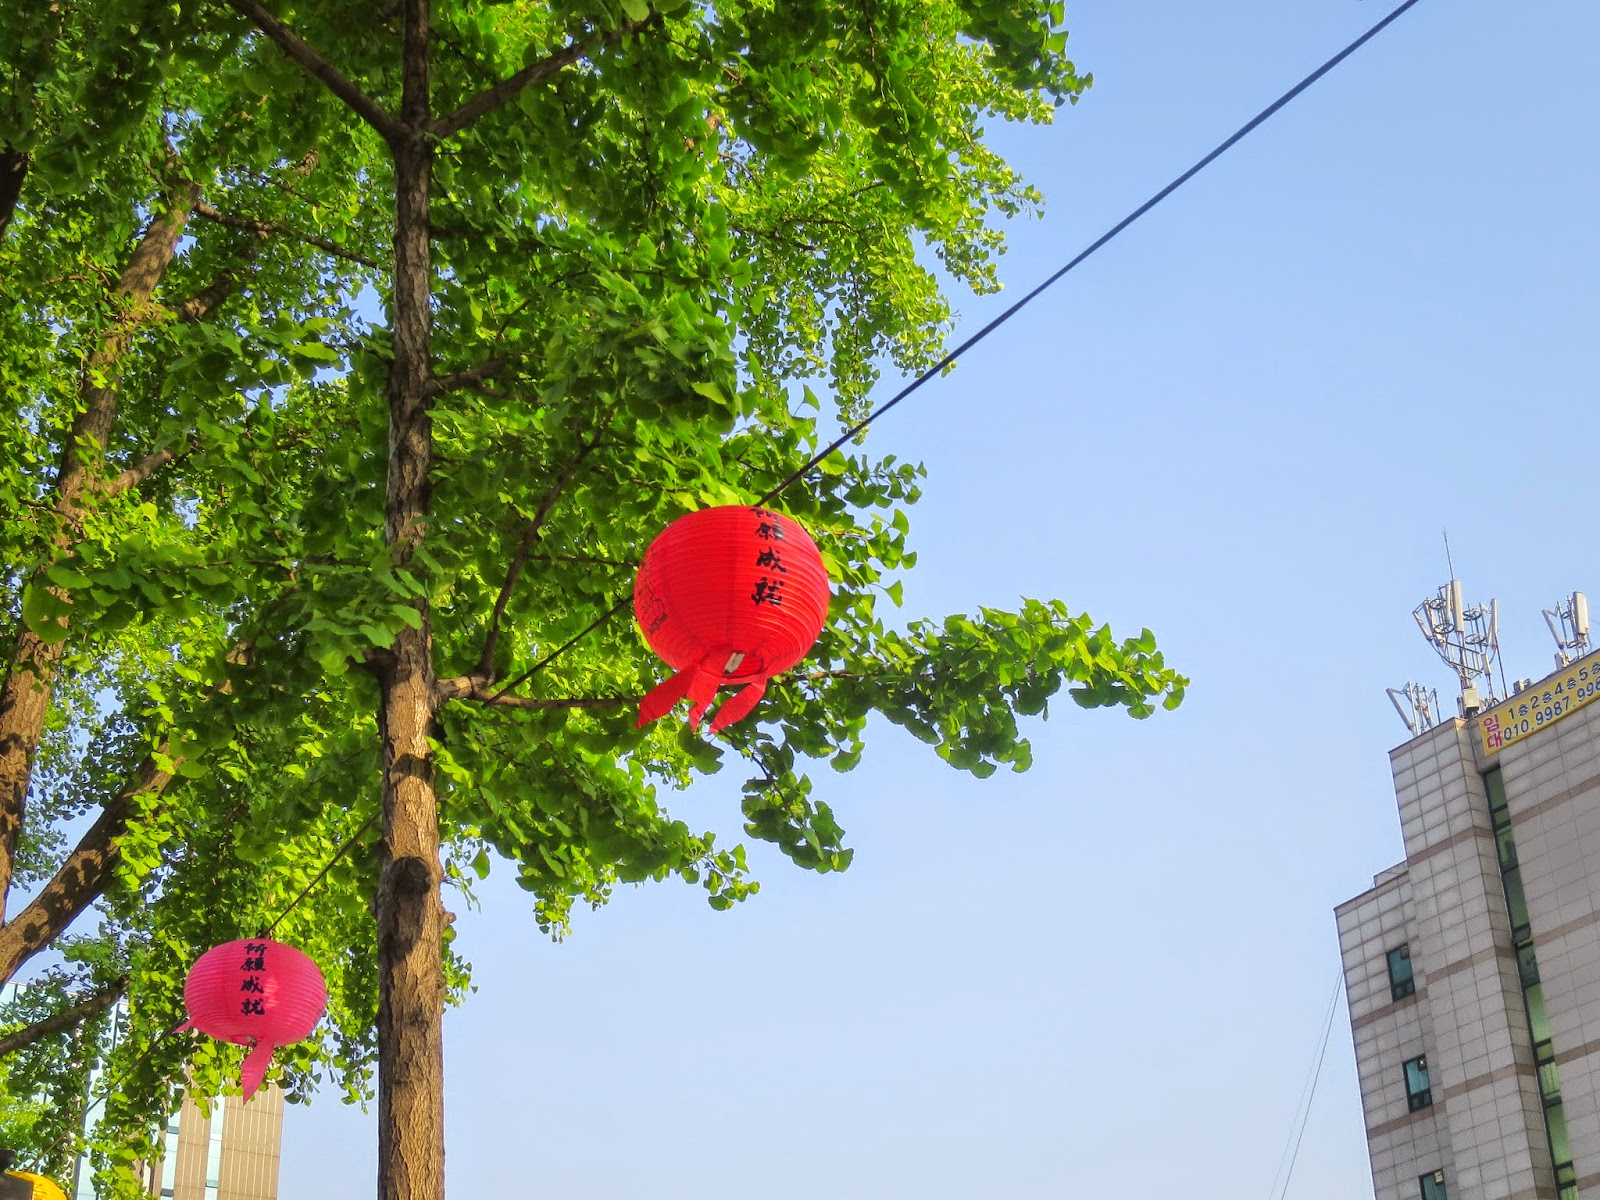 Lanterns against trees and a gorgeous blue sky